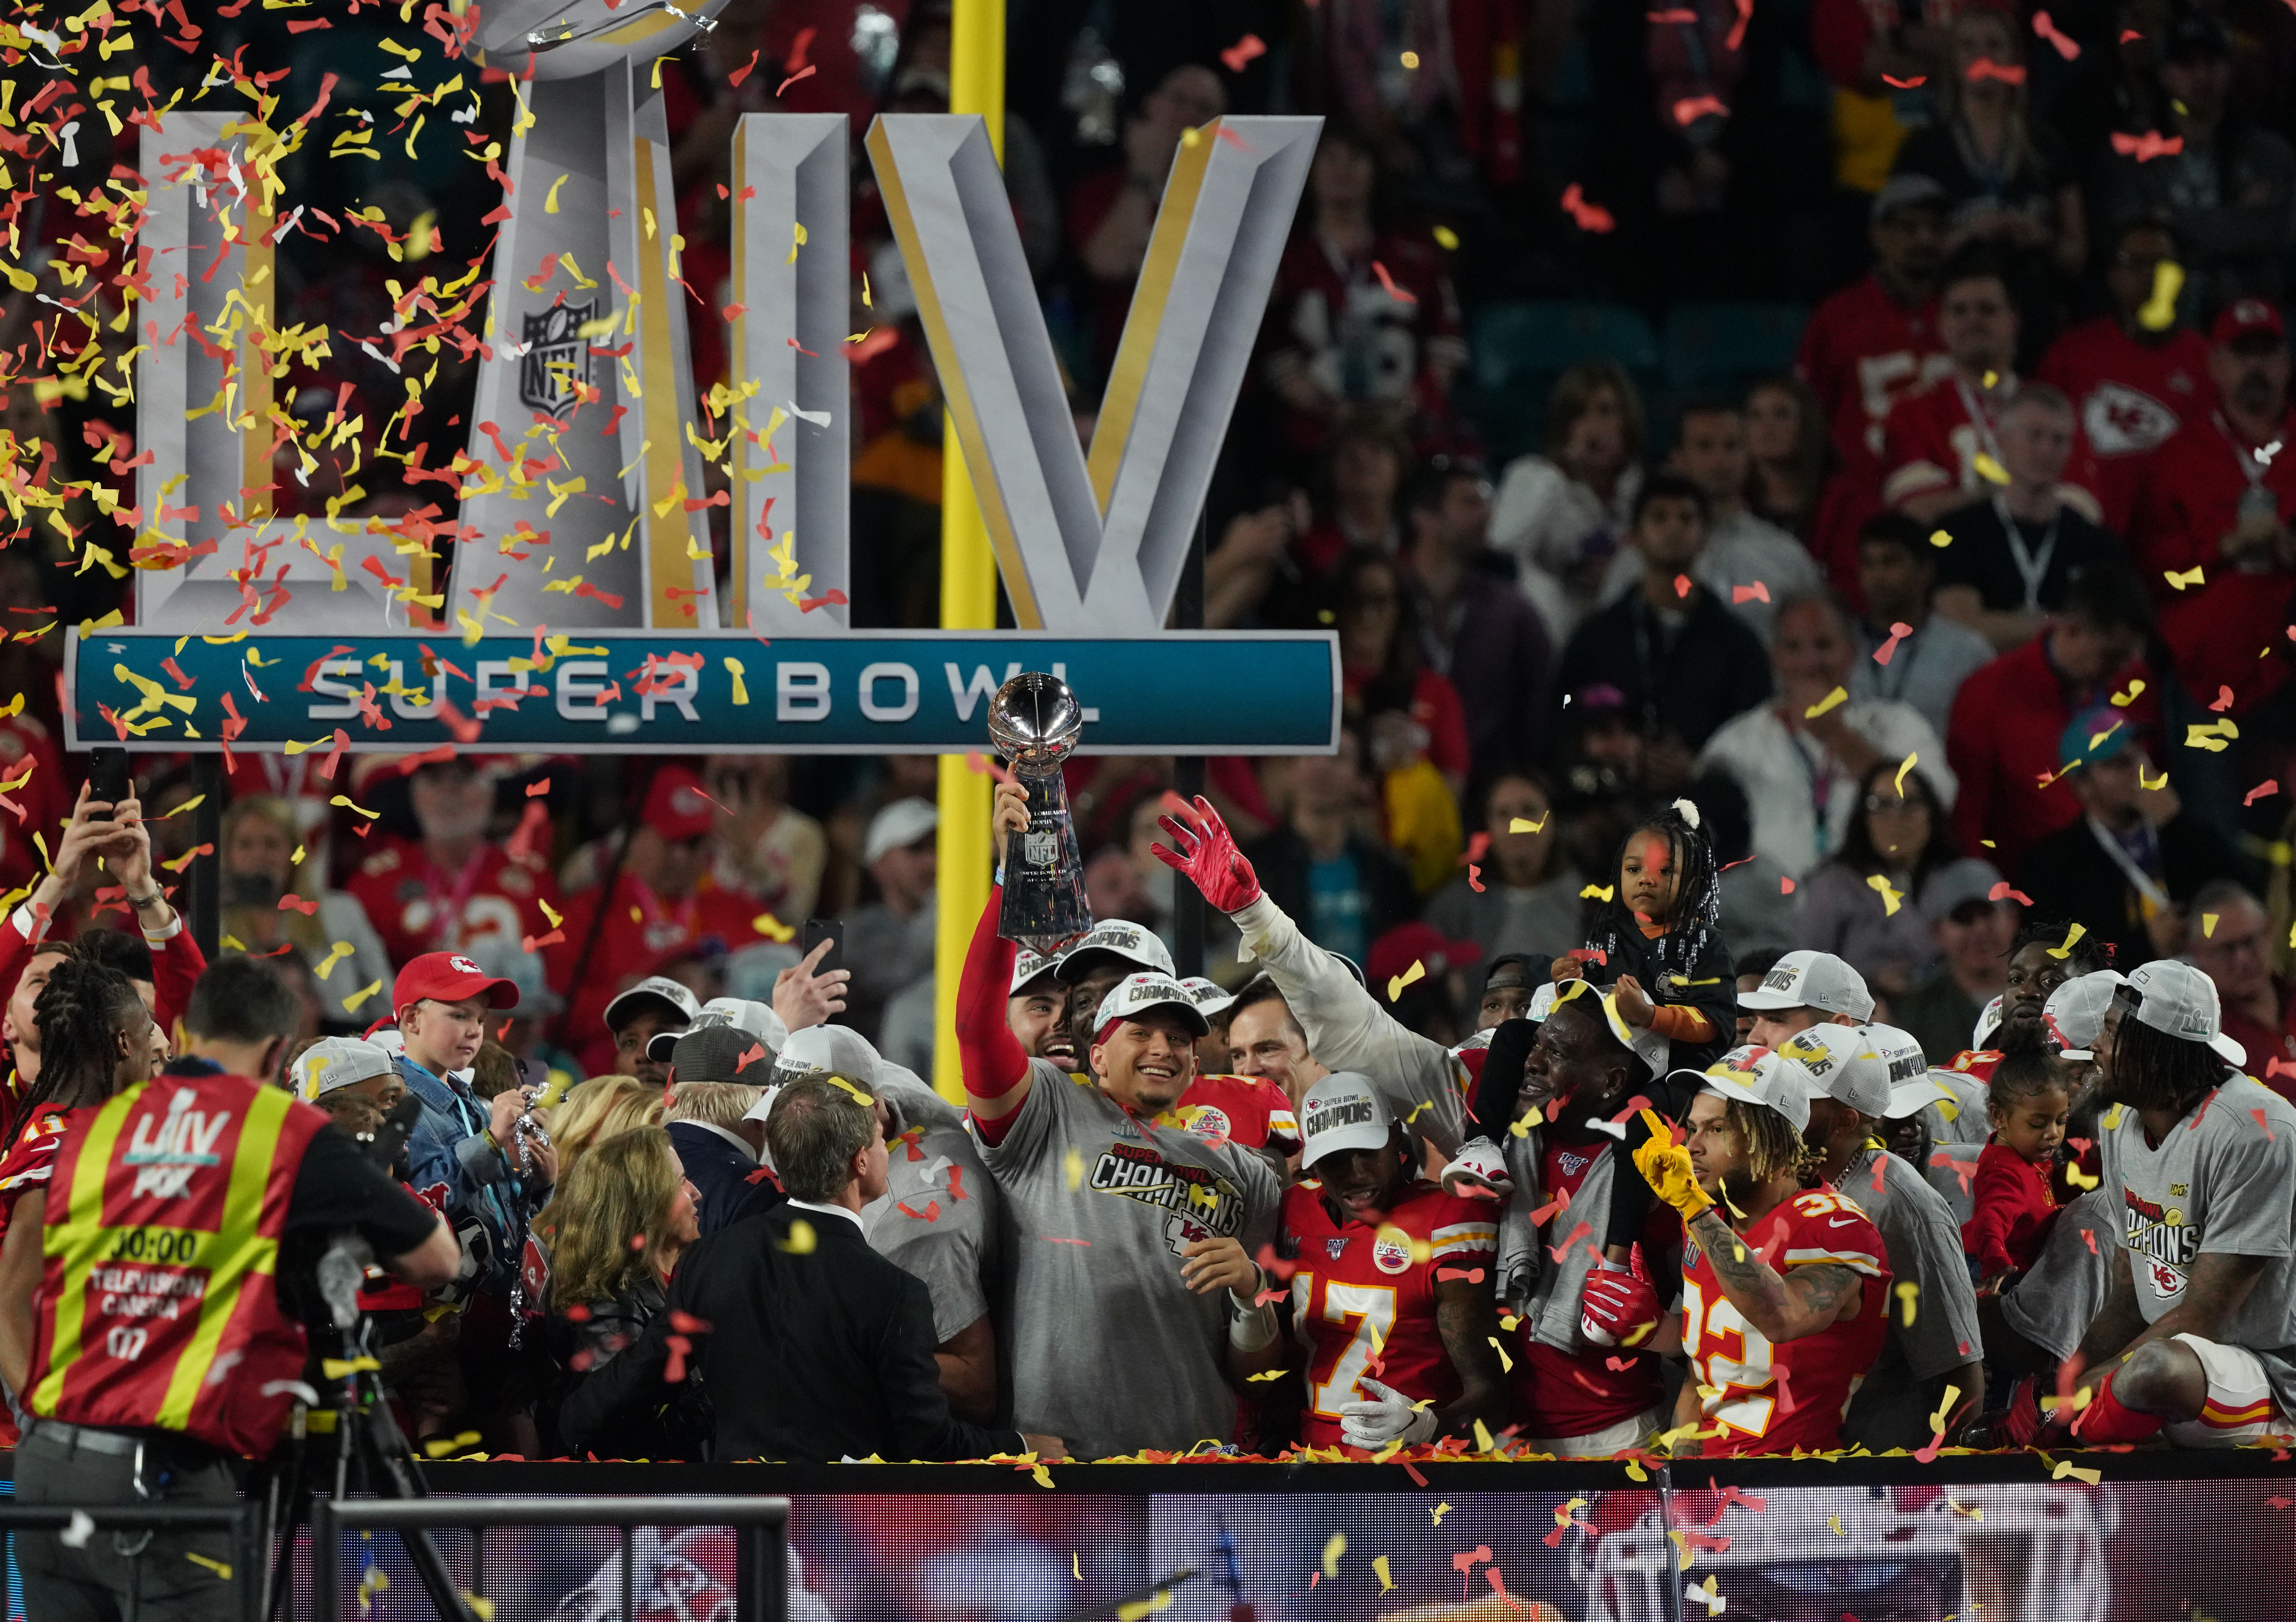 Average ticket price for Super Bowl LIV was absolutely ridiculous